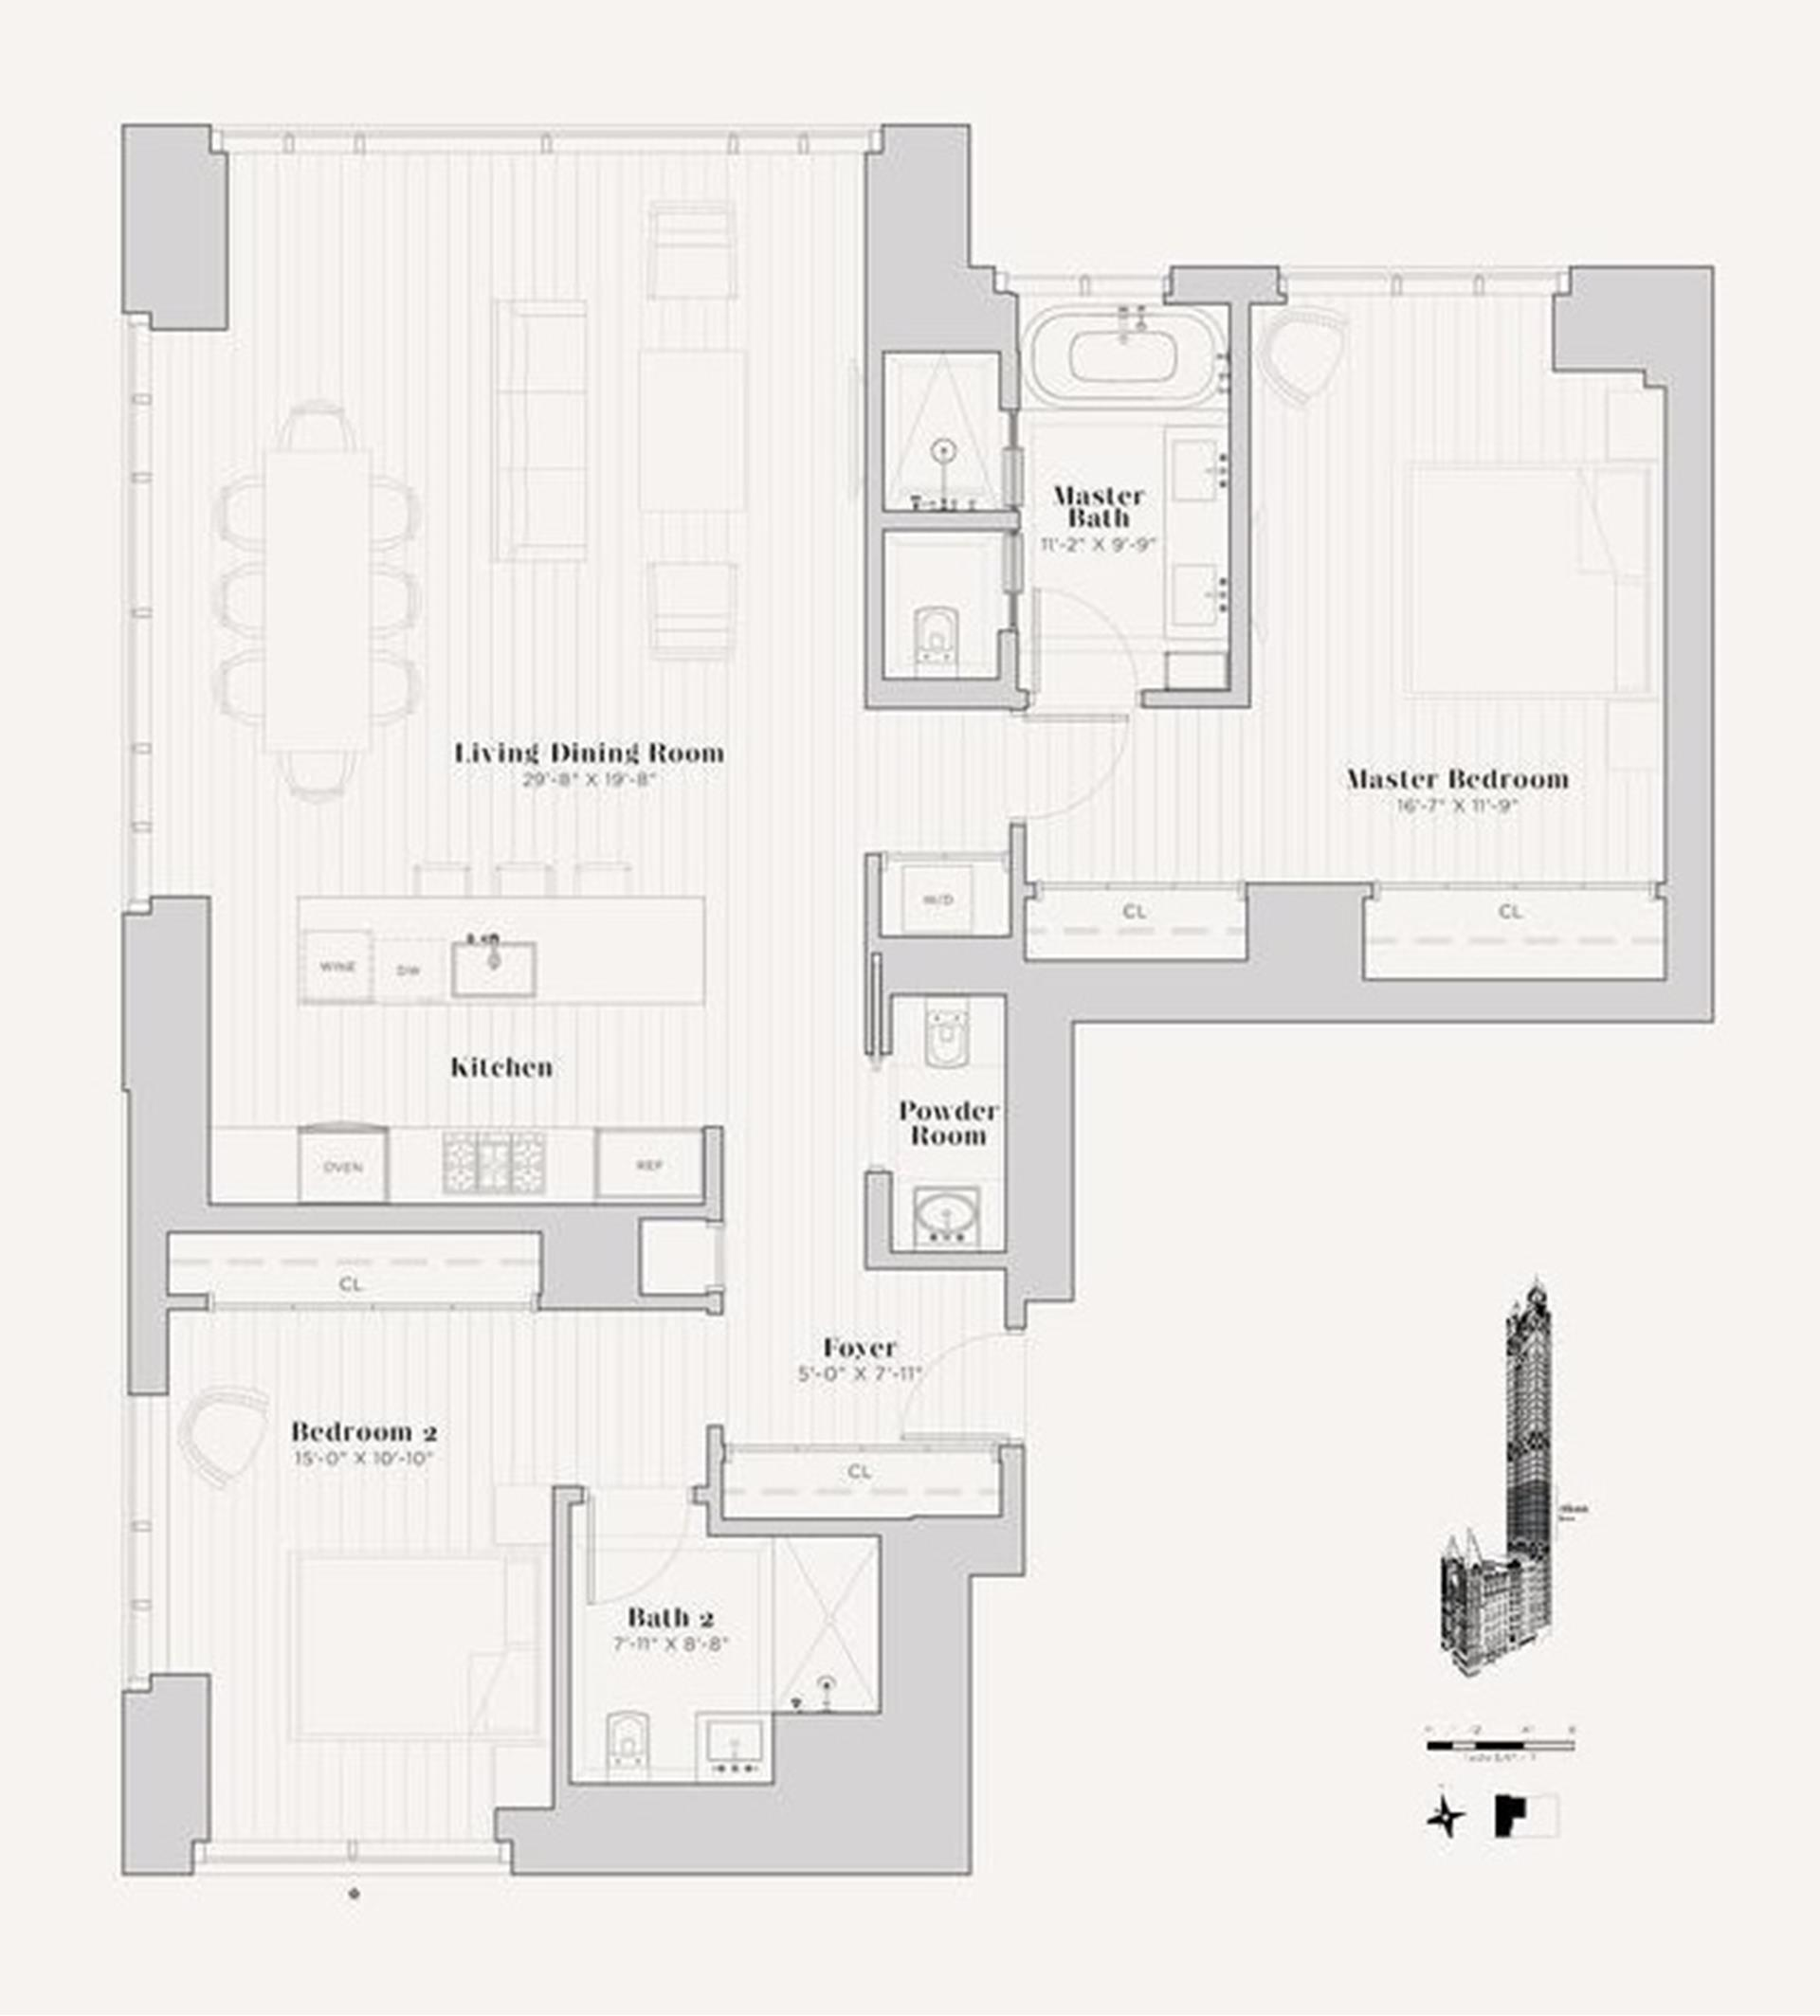 Floor plan of The Beekman Residences, 5 Beekman St, 17A - Financial District, New York